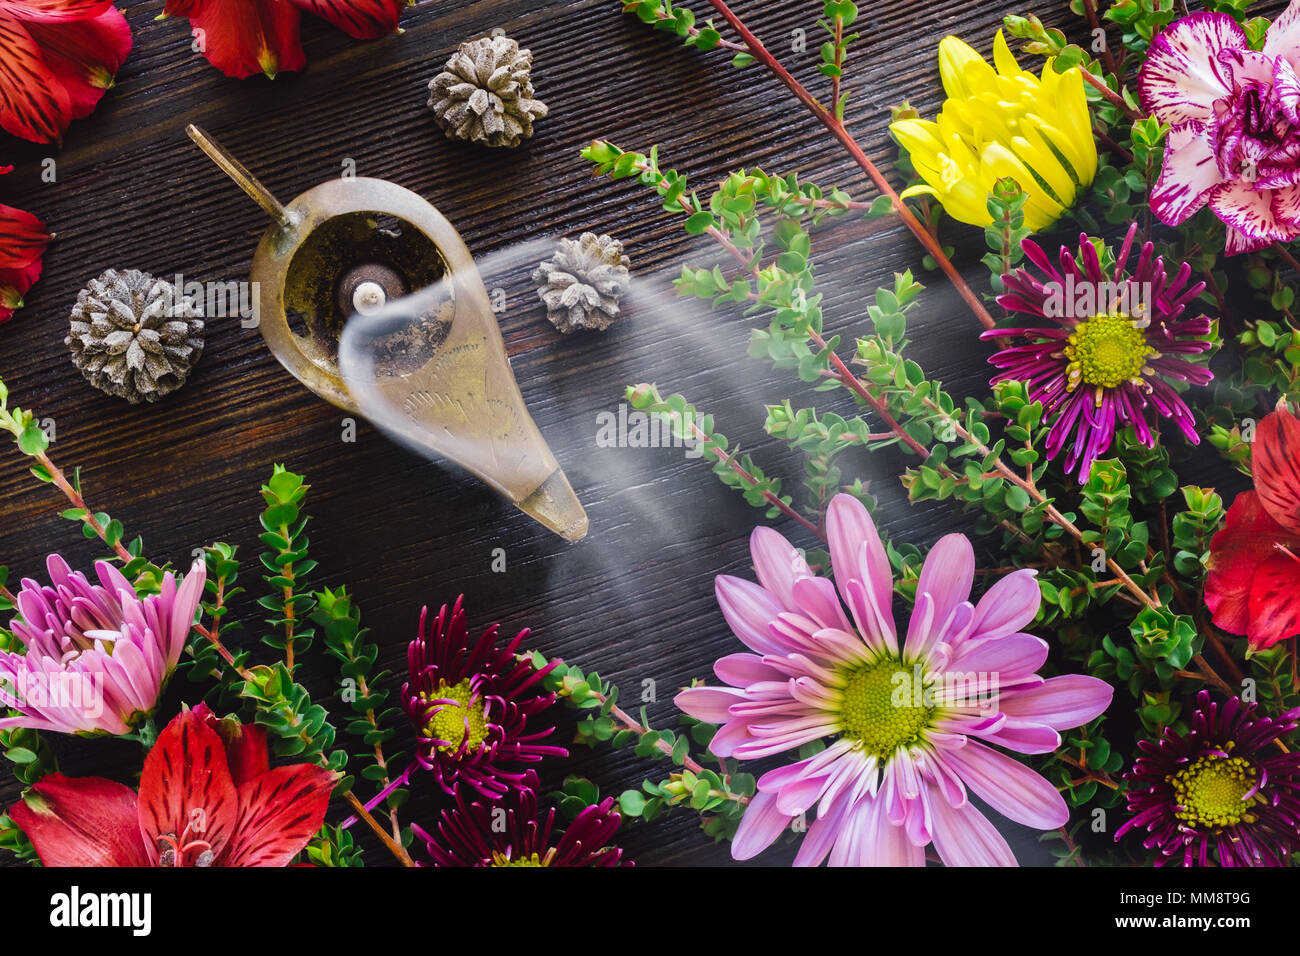 Burning Incense with Summer Flowers and Foliage - Stock Image